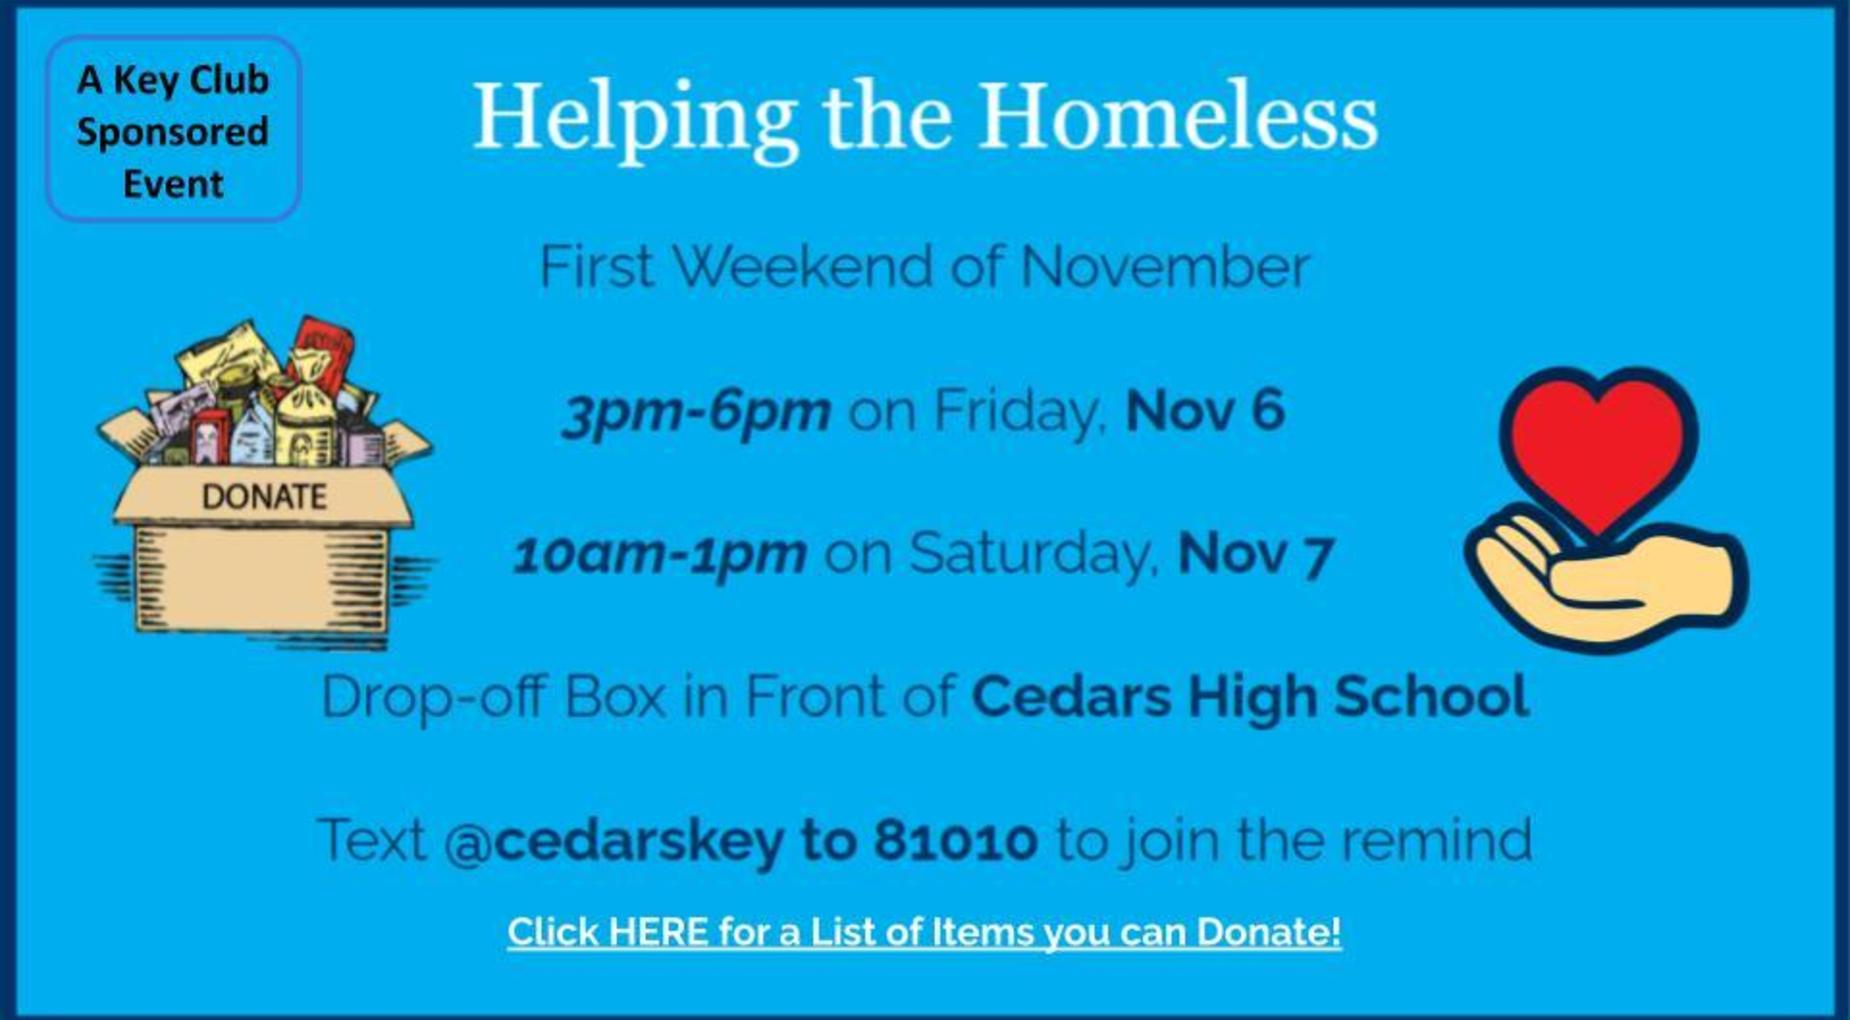 Key Club is taking Donations for the homeless on Nov 6th and 7th